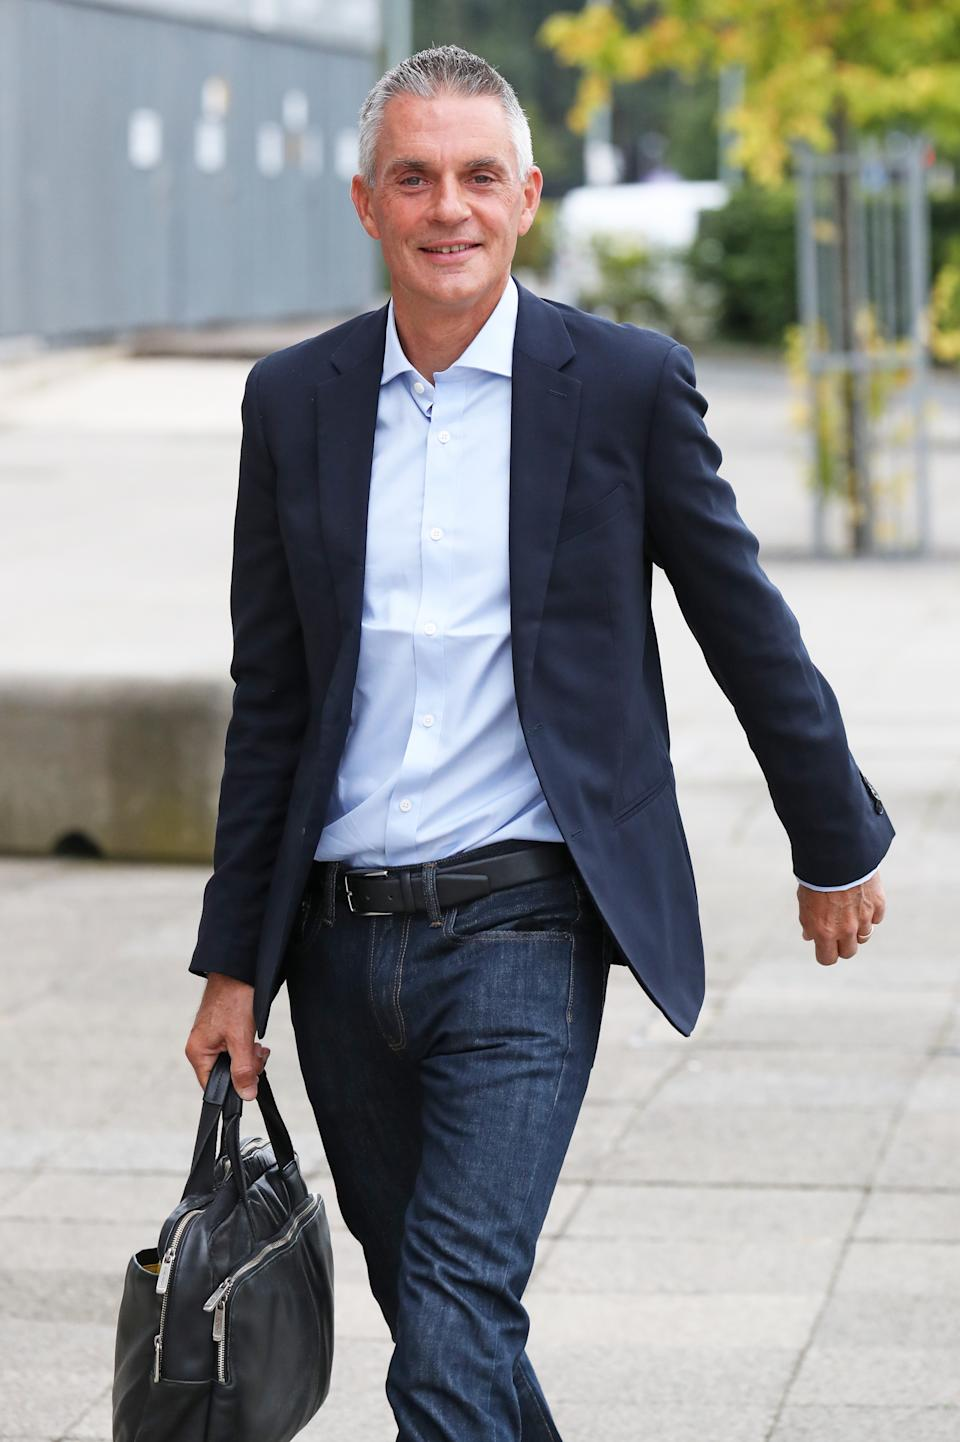 Tim Davie arrives at BBC Scotland in Glasgow for his first day as BBC director-general of the BBC. (PA)